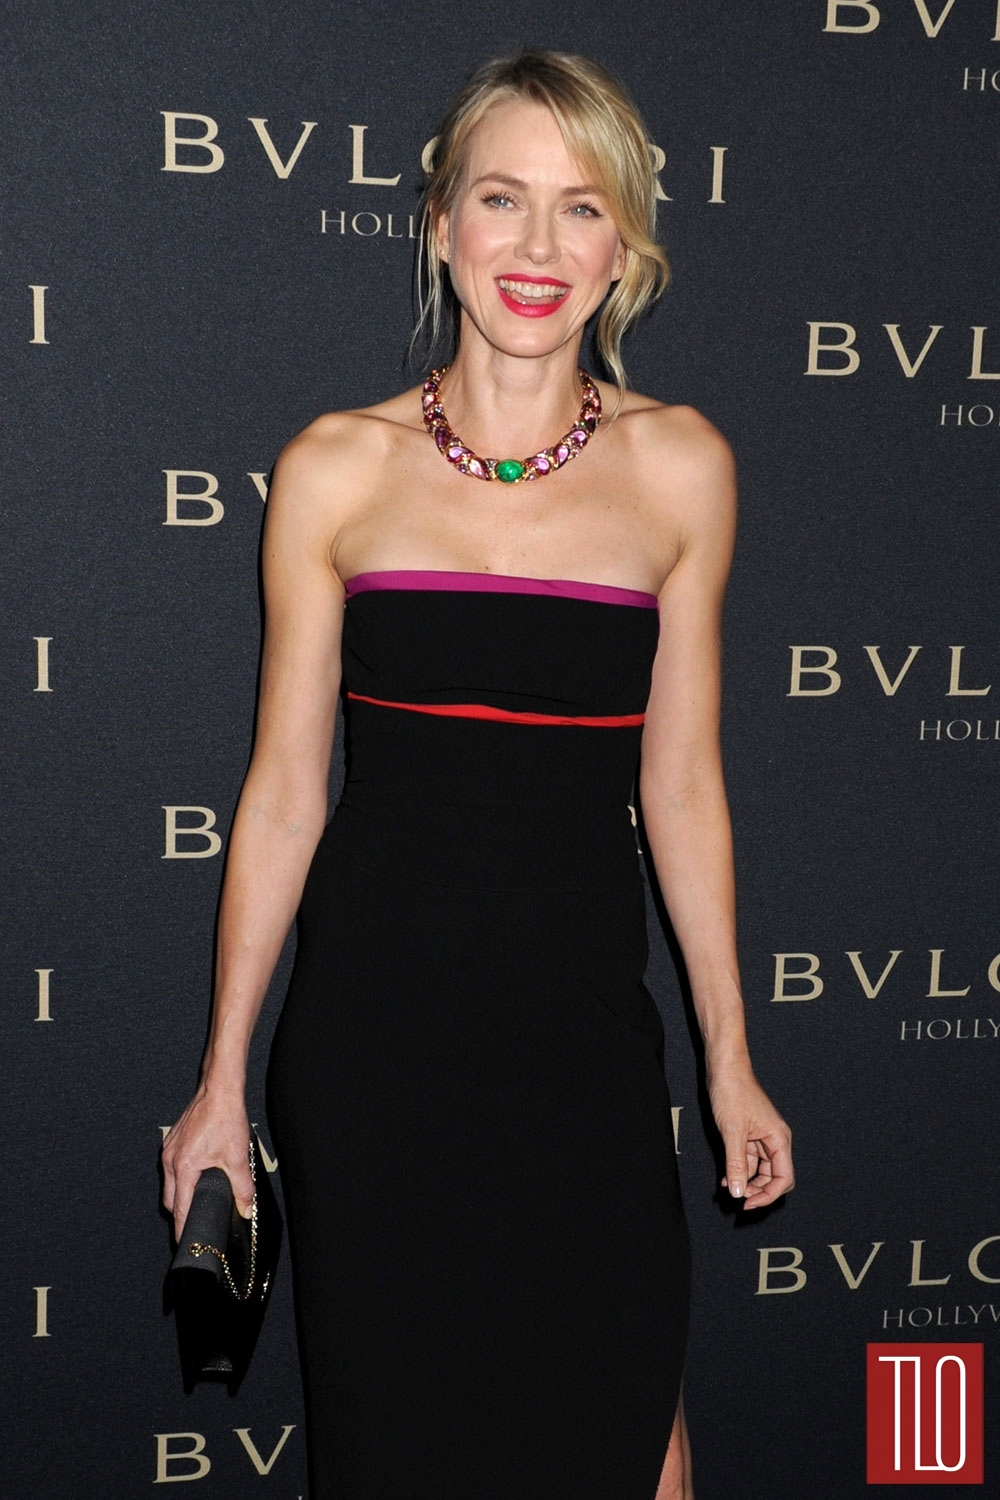 Naomi-Watts-Altuzarra-Decades-Glamour-Bulgari-Tom-Lorenzo-Site-TLO (1)